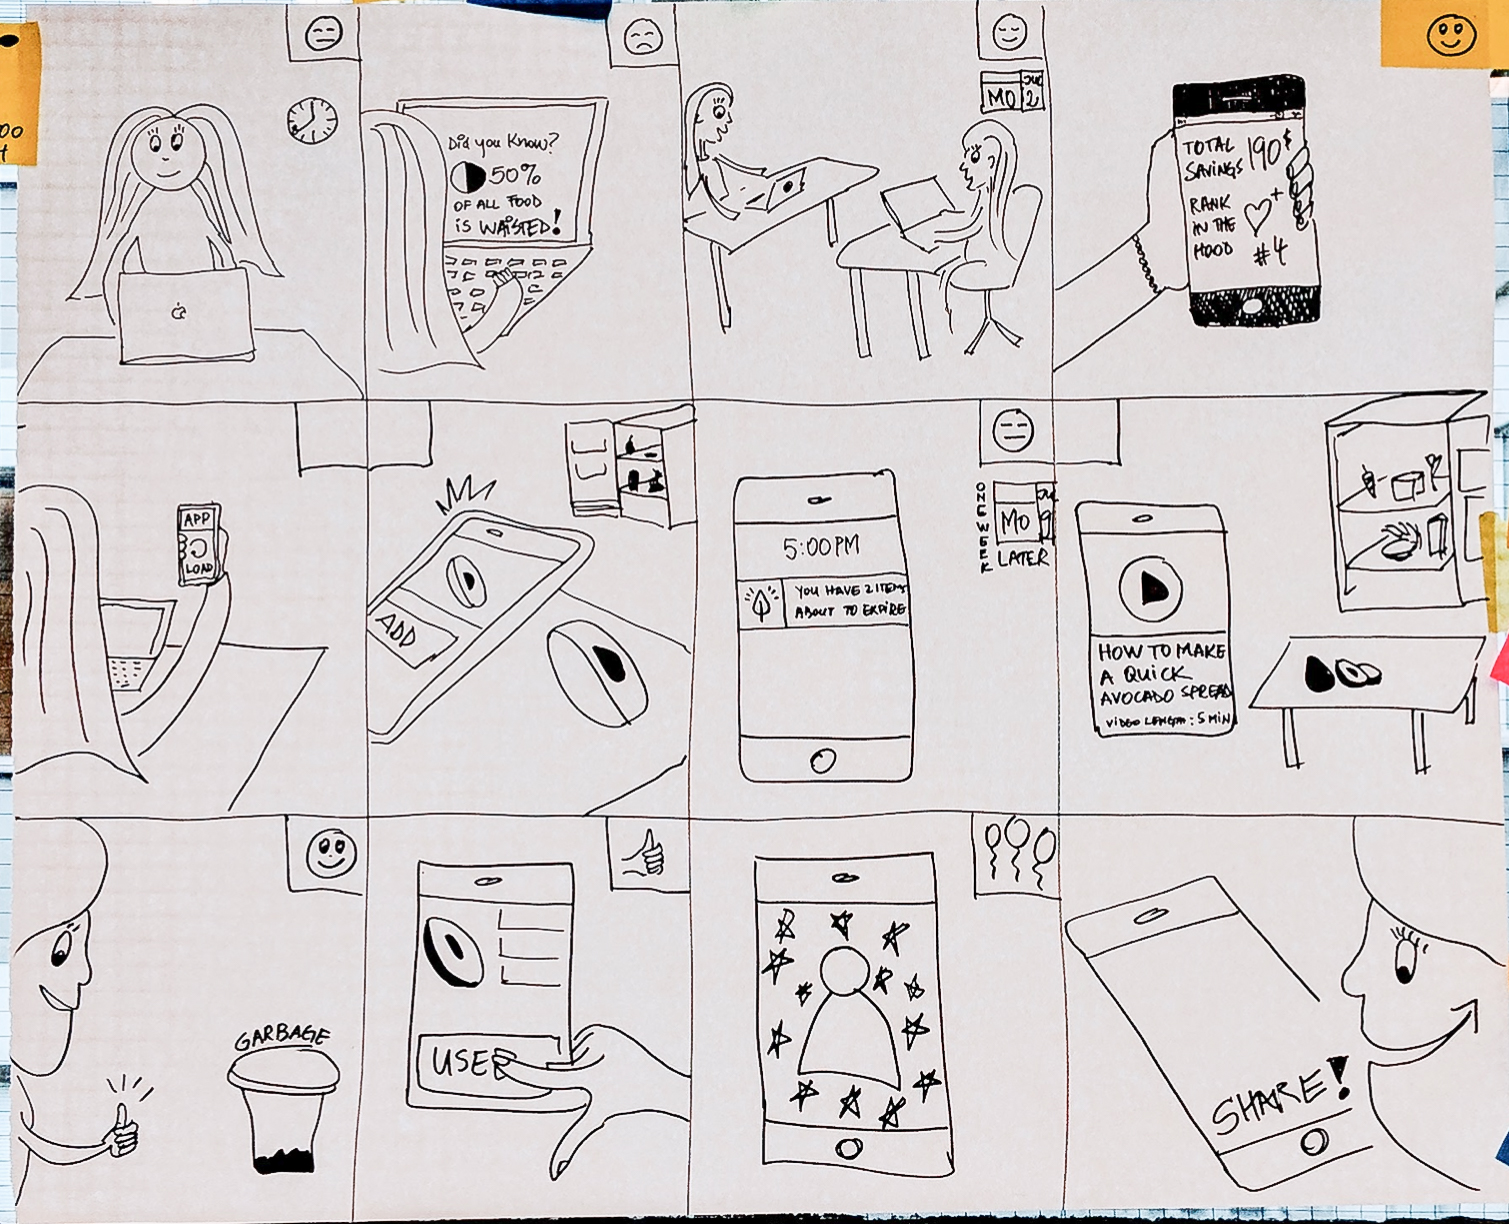 Visualising Susan's (our persona) journey and experience using our product. This was vital in guiding design decisions.